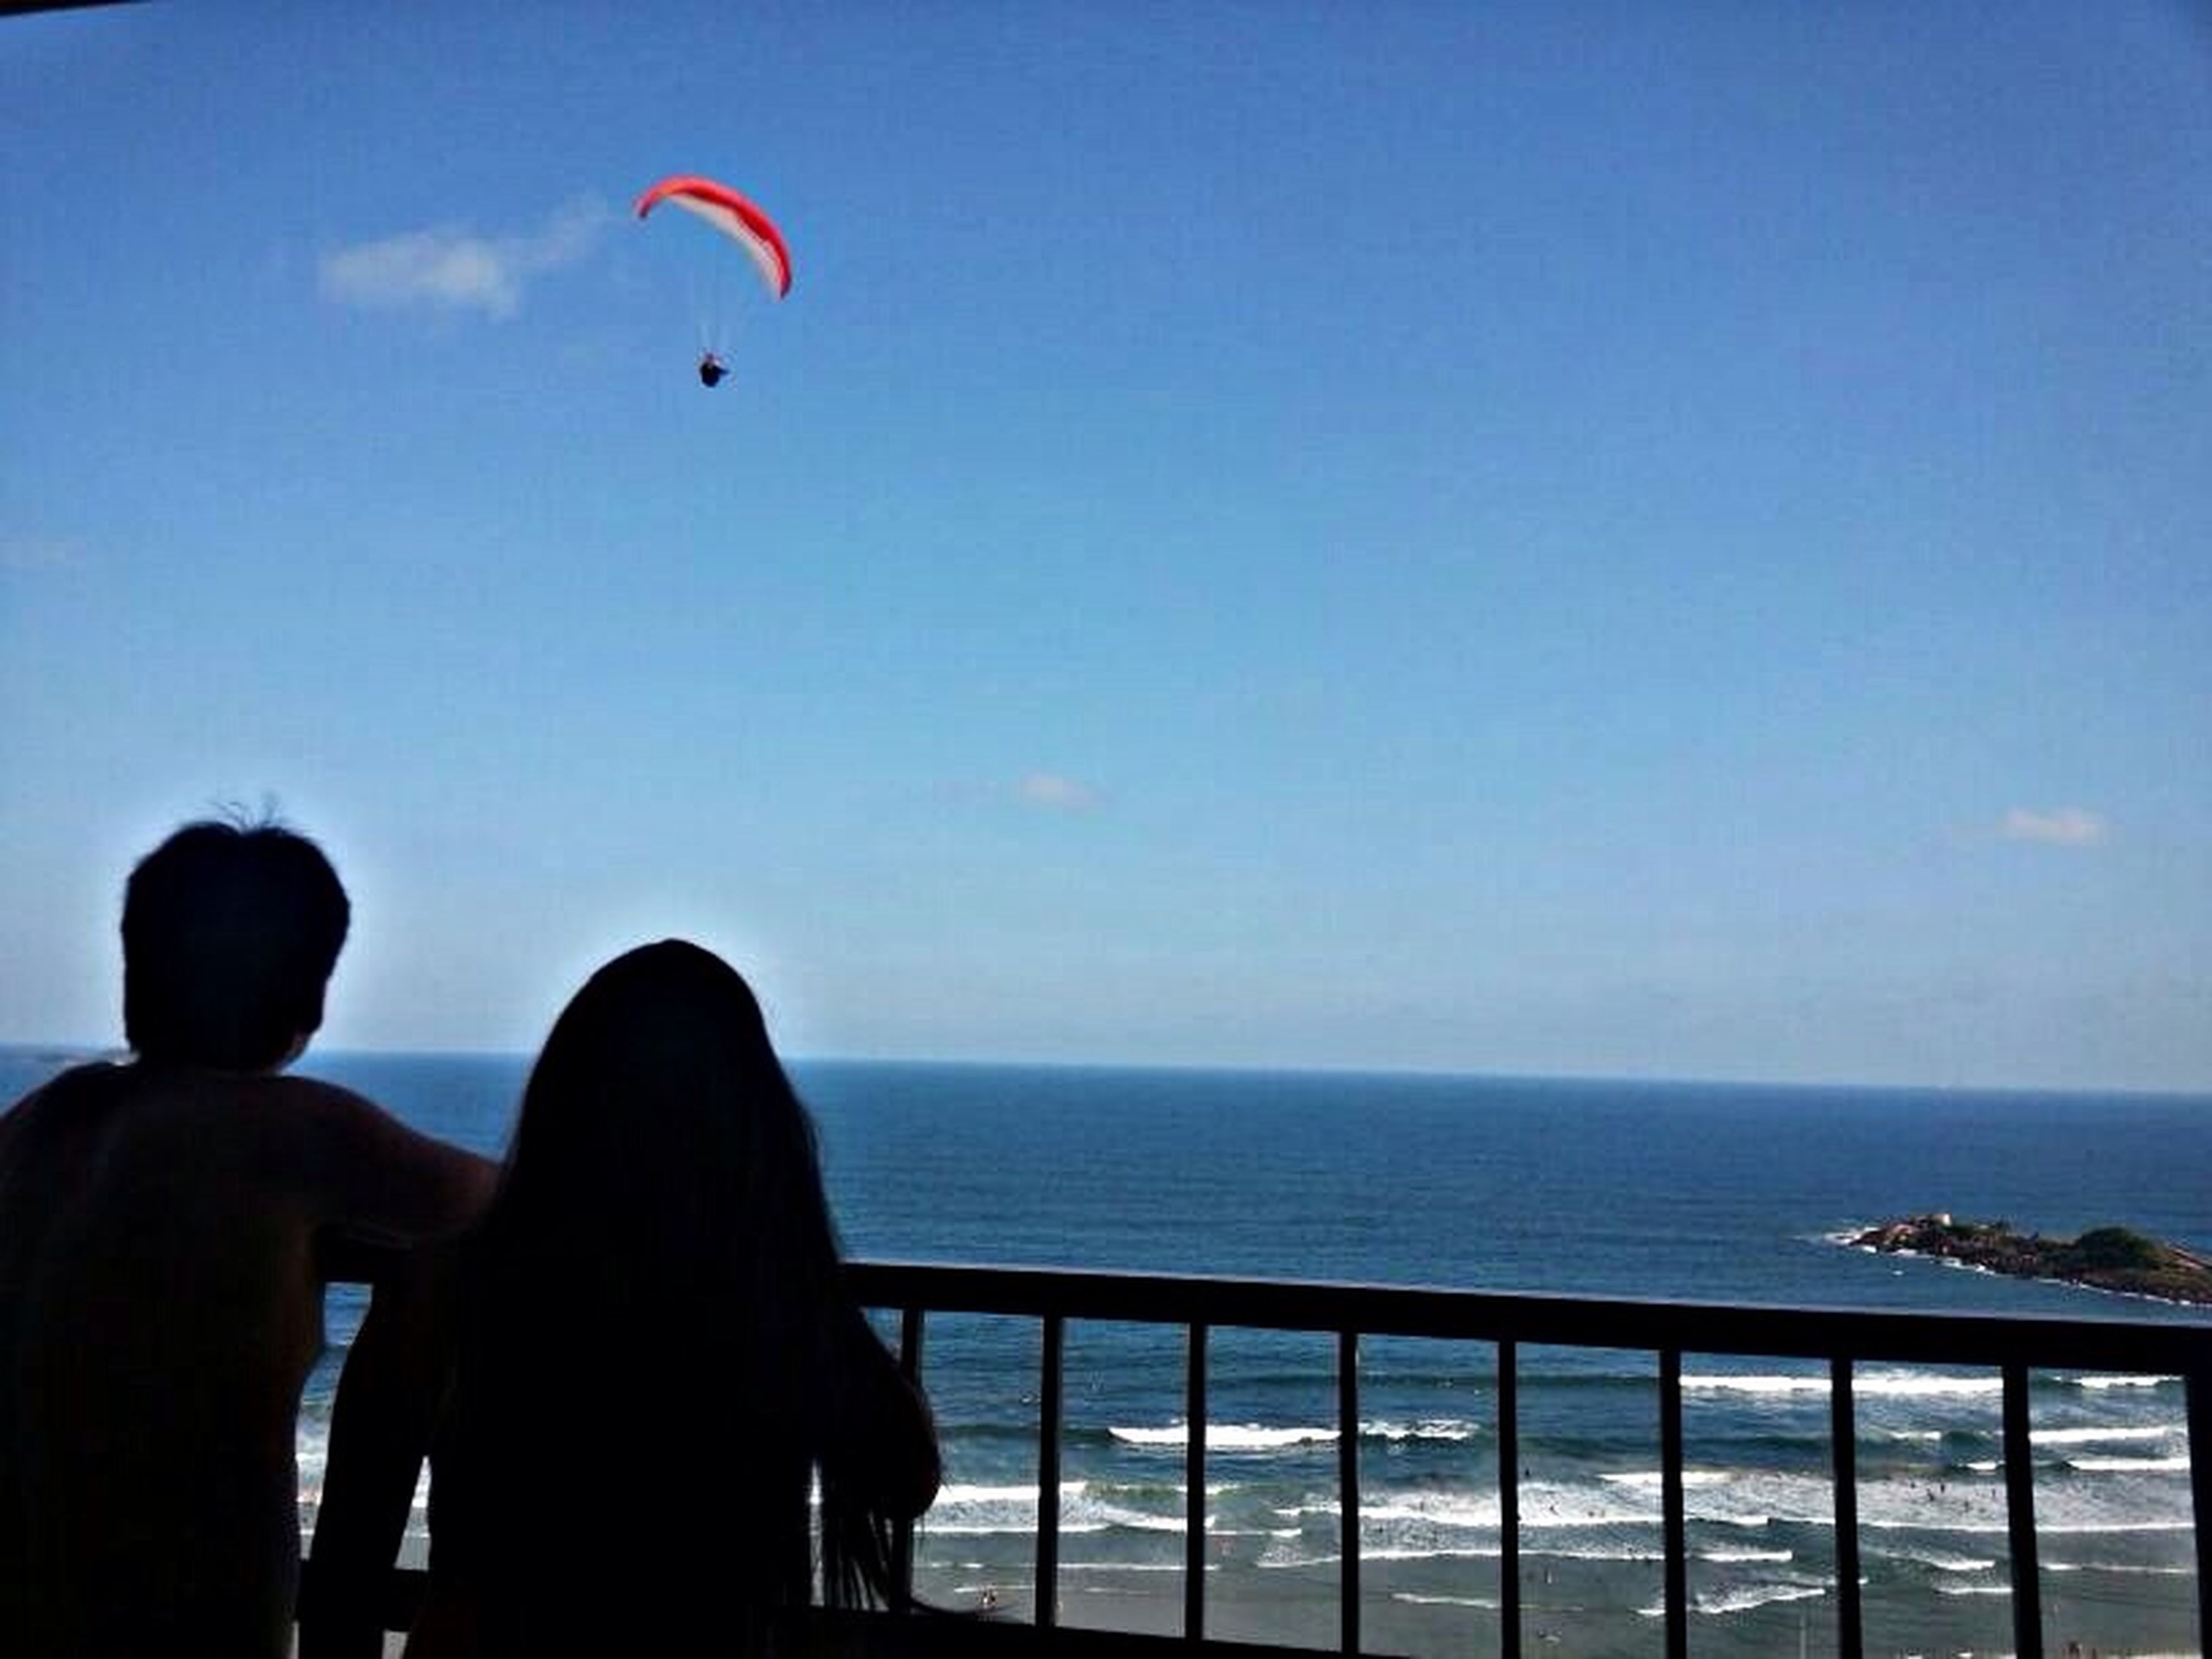 sea, leisure activity, horizon over water, lifestyles, water, beach, sky, sport, clear sky, blue, men, vacations, transportation, mid-air, copy space, parachute, flying